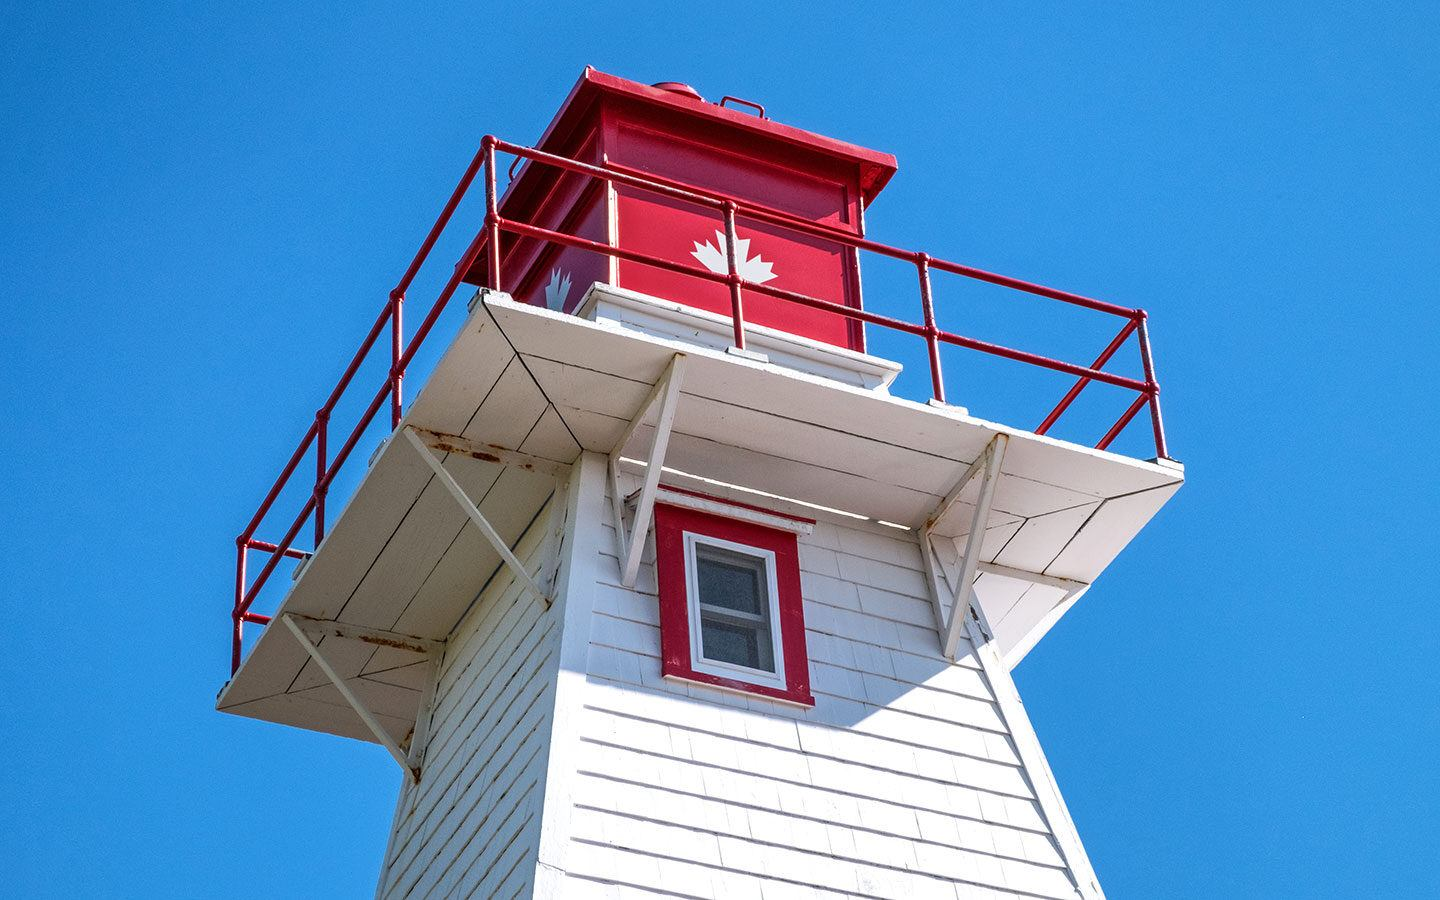 Red and white lighthouse against a blue sky in PEI, Canada